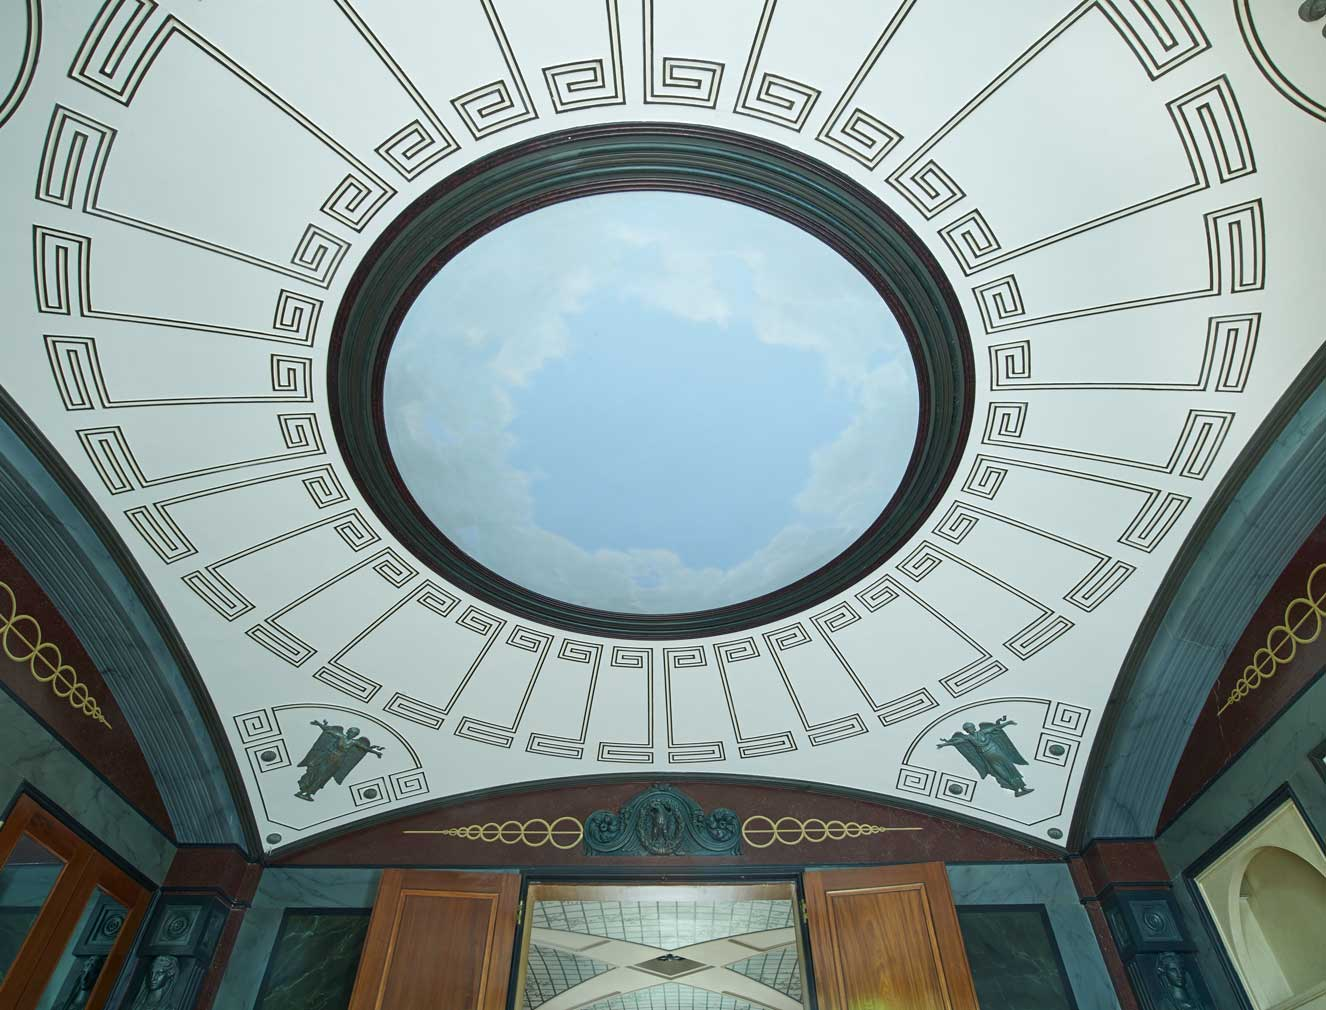 London's Pitzhanger Manor - a close up of the ceiling inside one of Soane's drawing rooms